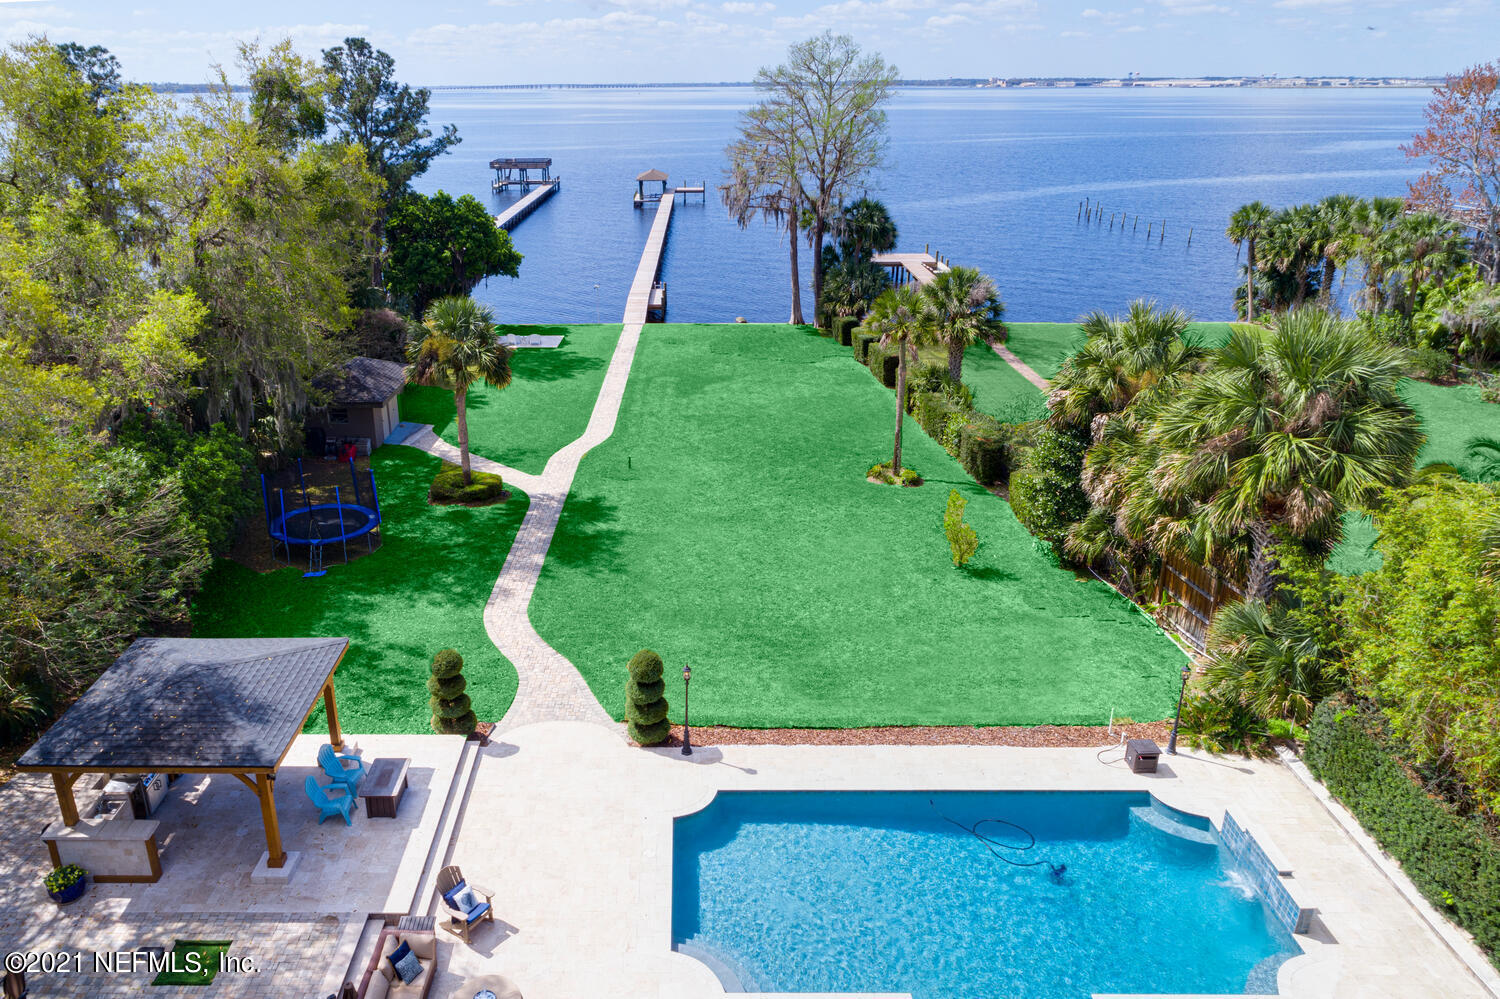 AMAZING RIVER VIEWS & SUNSETS!! Stunning and spacious home perfectly nestled on a deep St. Johns River lot just one block north of The Bolles school! Complete with newly renovated kitchen, master suite and bathroom with steam shower. BRAND NEW ROOF, newly rebuilt dock complete with boat lift. New luxurious state-of-the-art, heated pool w/ LED lighting with patio & summer kitchen - everything you need to entertain or spend your afternoon watching the beautiful sunset in the comfort of your own waterfront sanctuary! Updates galore, including kitchen, flooring, electrical, plumbing, windows, HVACs and much more! Please see attached list of improvements. Unique opportunity to own a private riverfront estate with a deep lot; must see to appreciate!